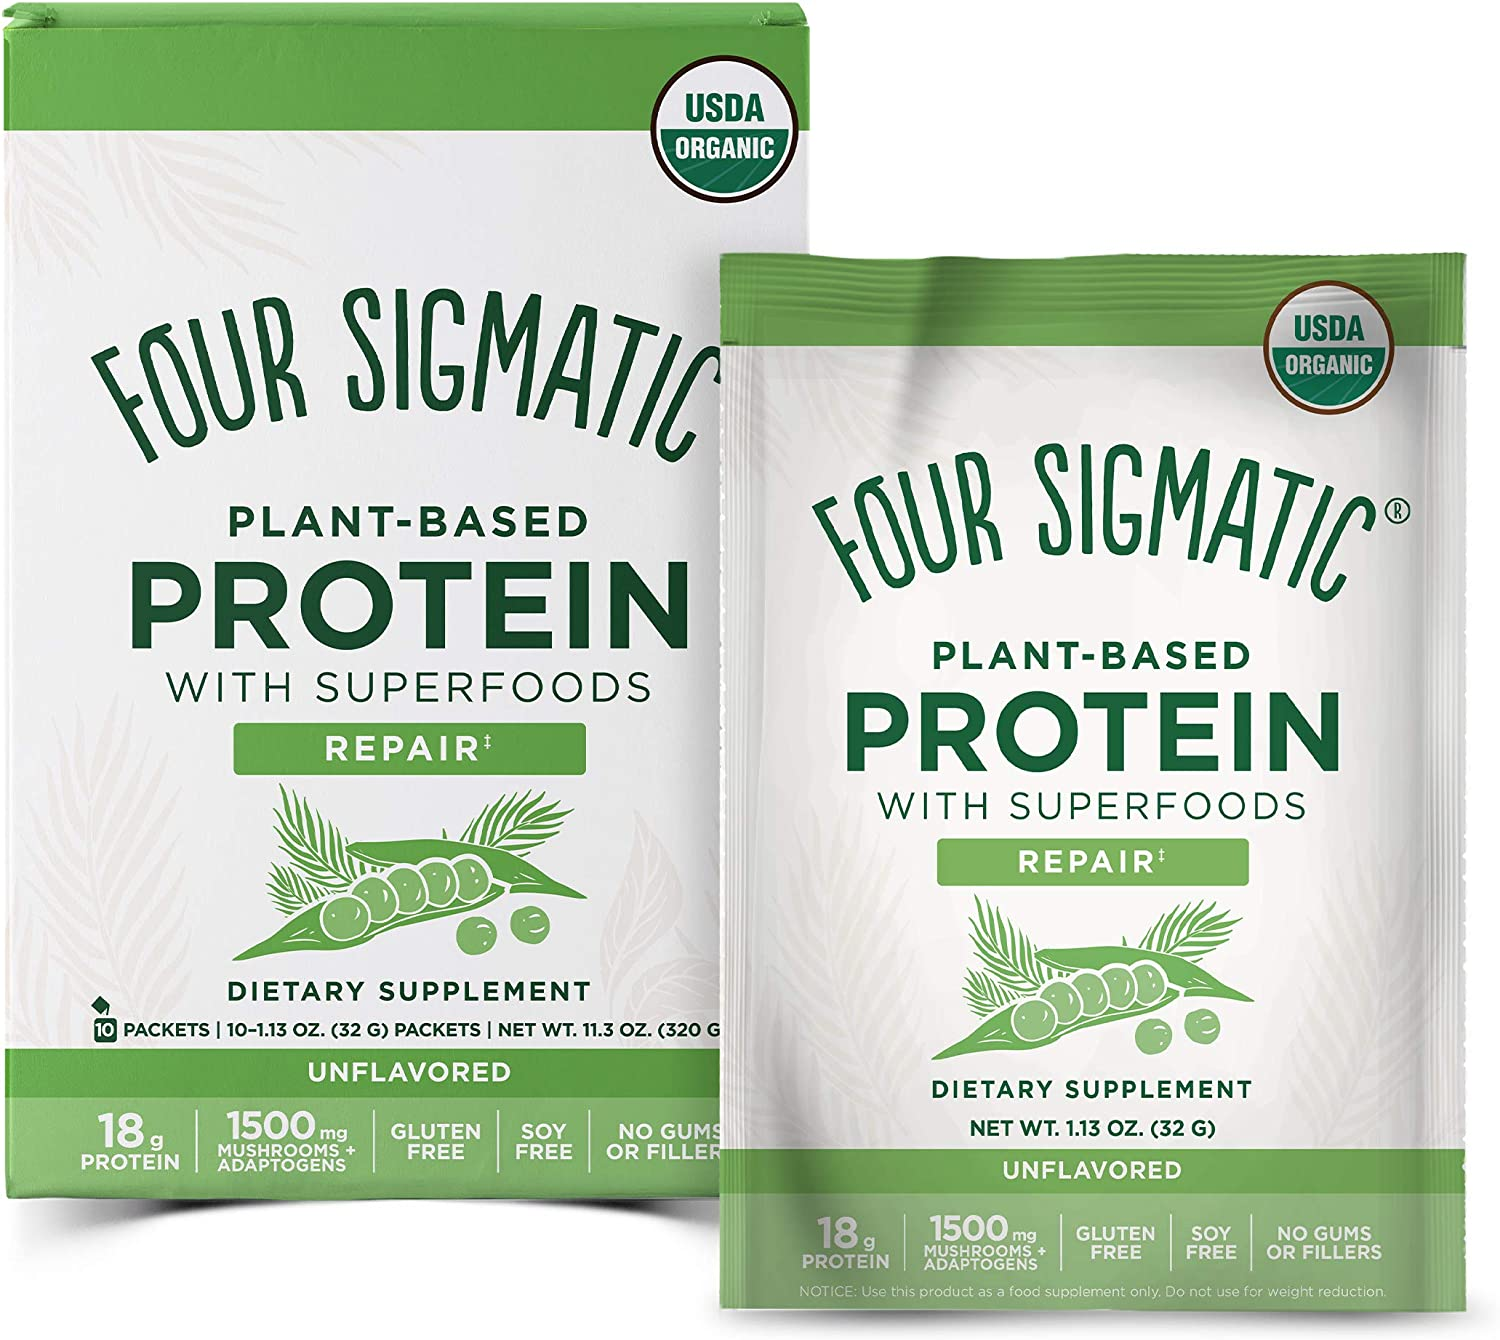 Four Memphis Mall Sigmatic Don't miss the campaign Superfood Protein wit Plant-Based Organic